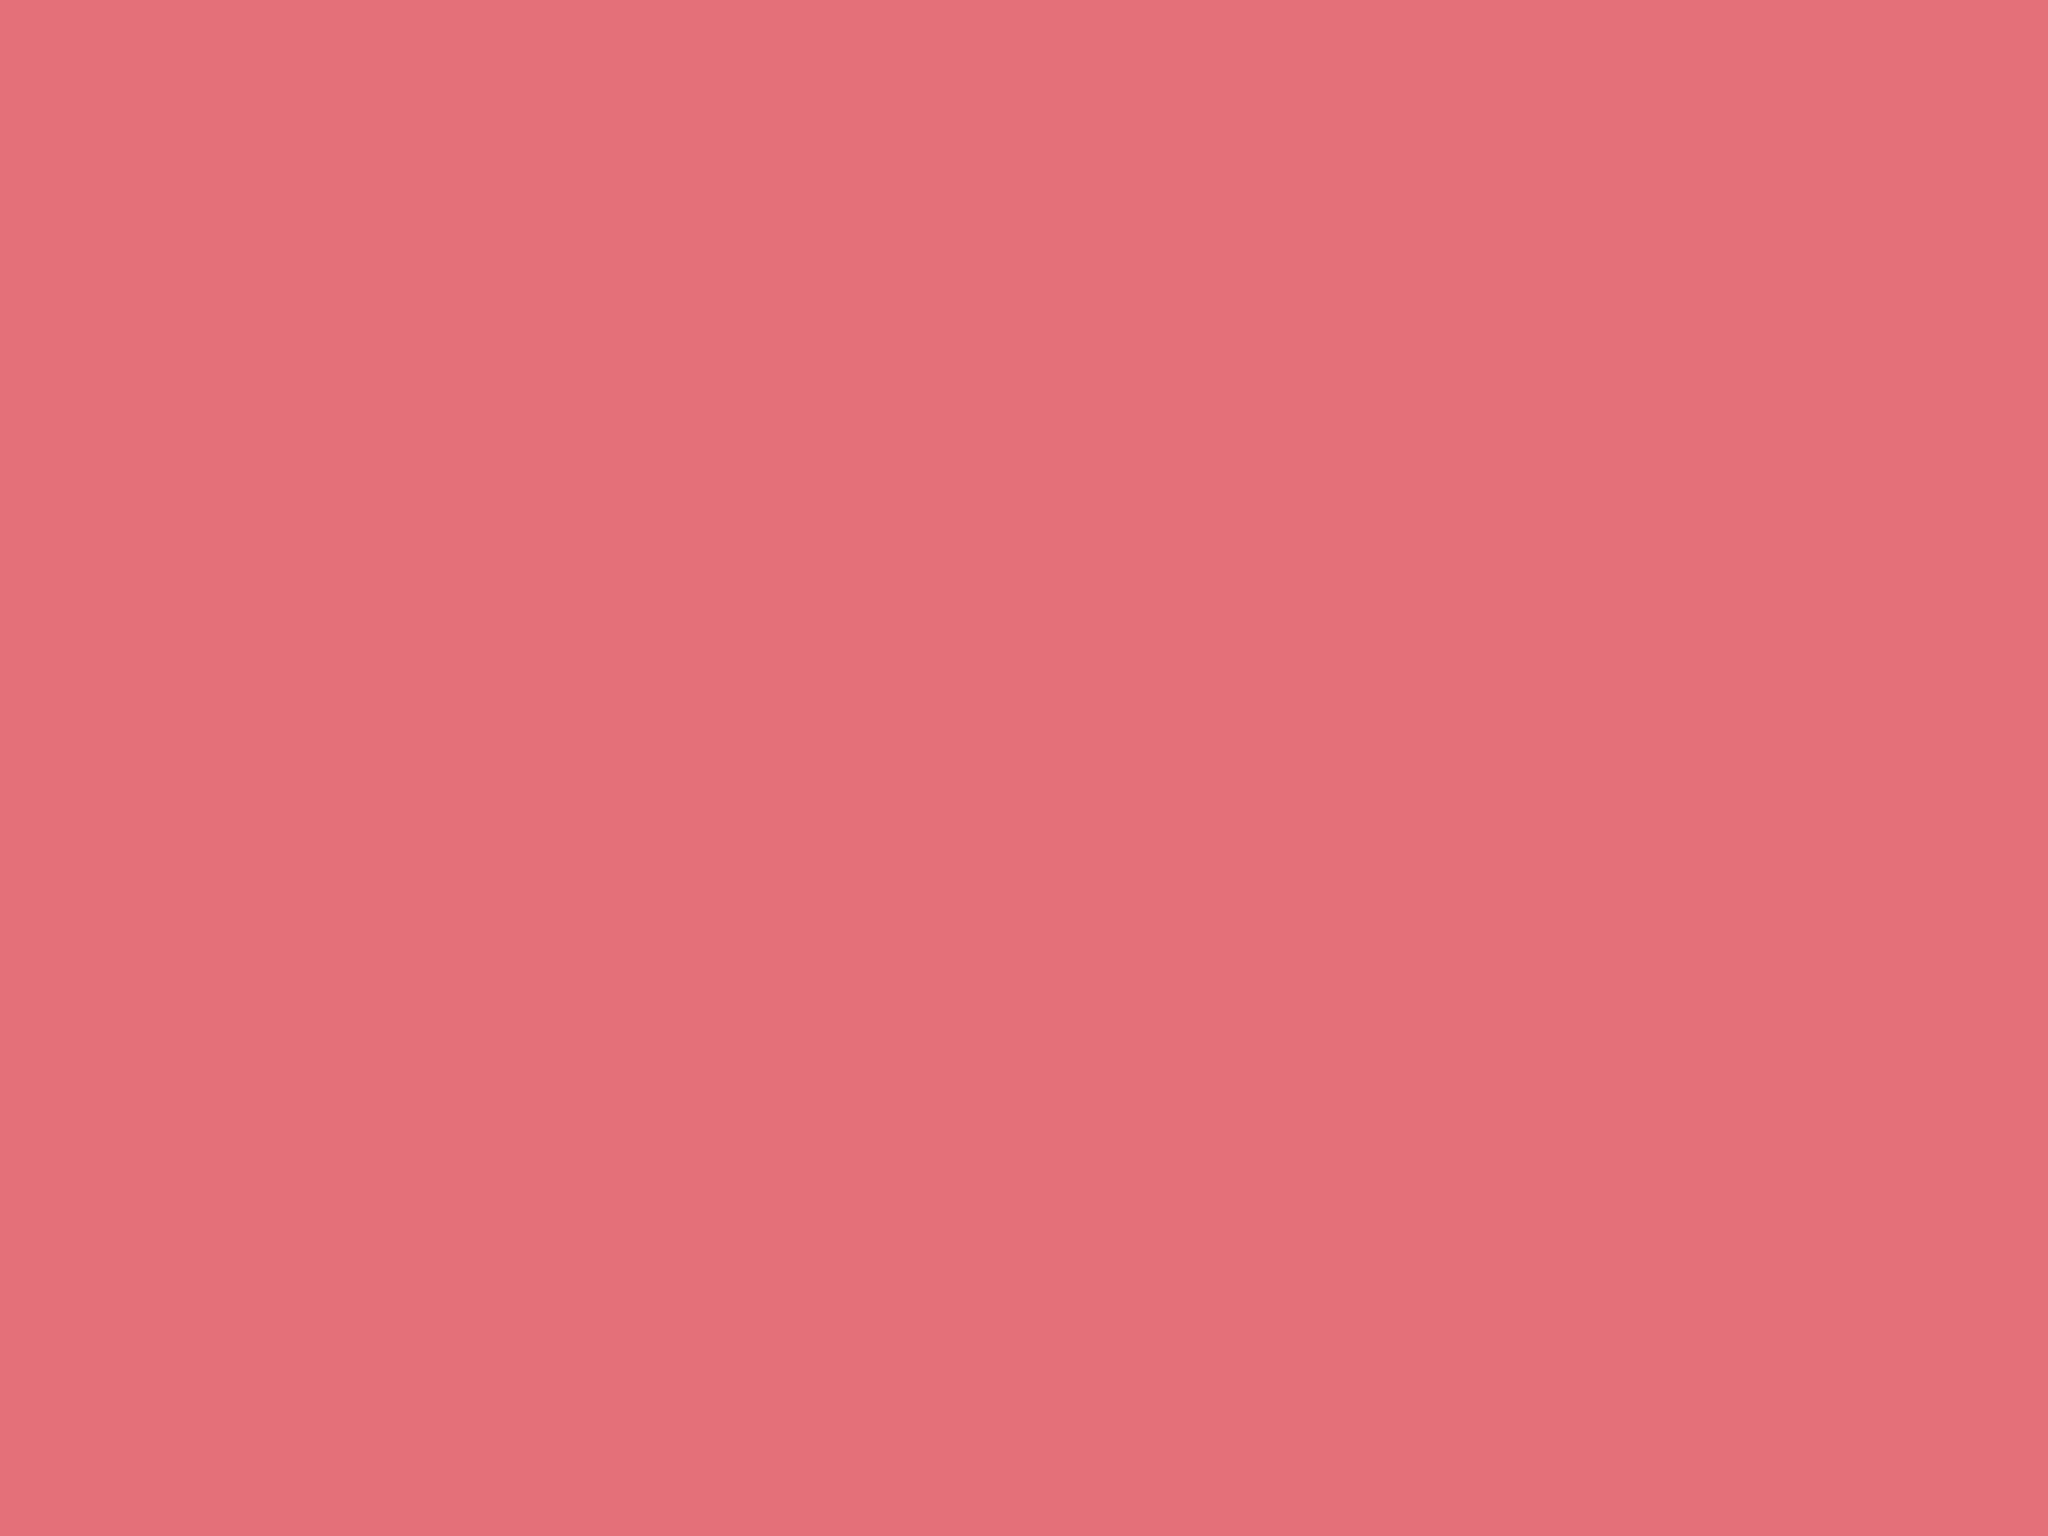 2048x1536 Candy Pink Solid Color Background